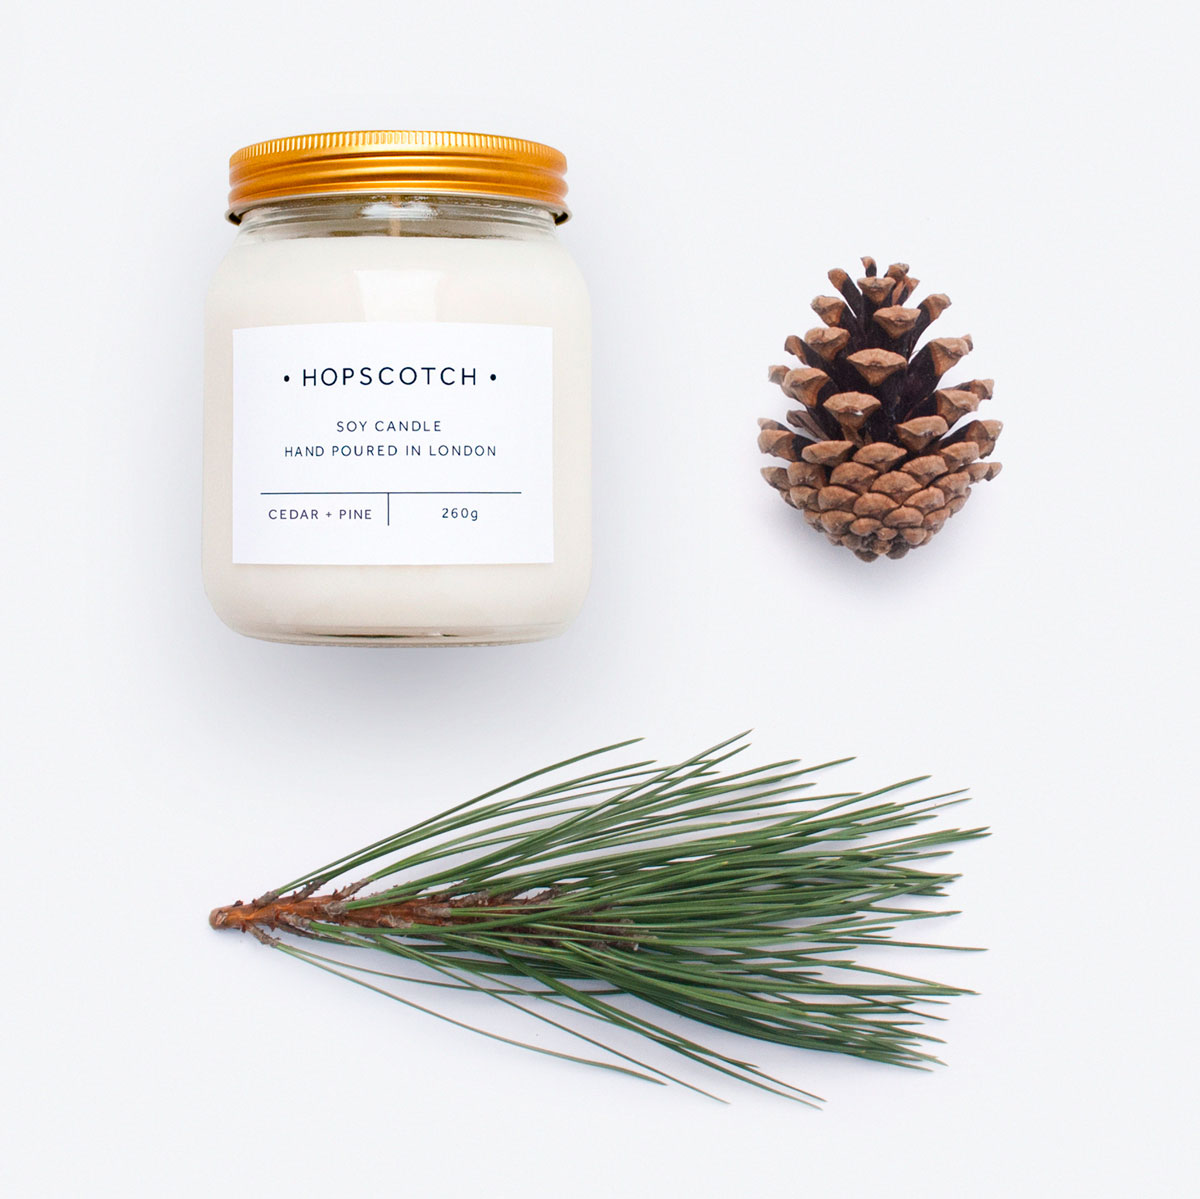 Hopscotch Cedar + Pine Large Jar Candle